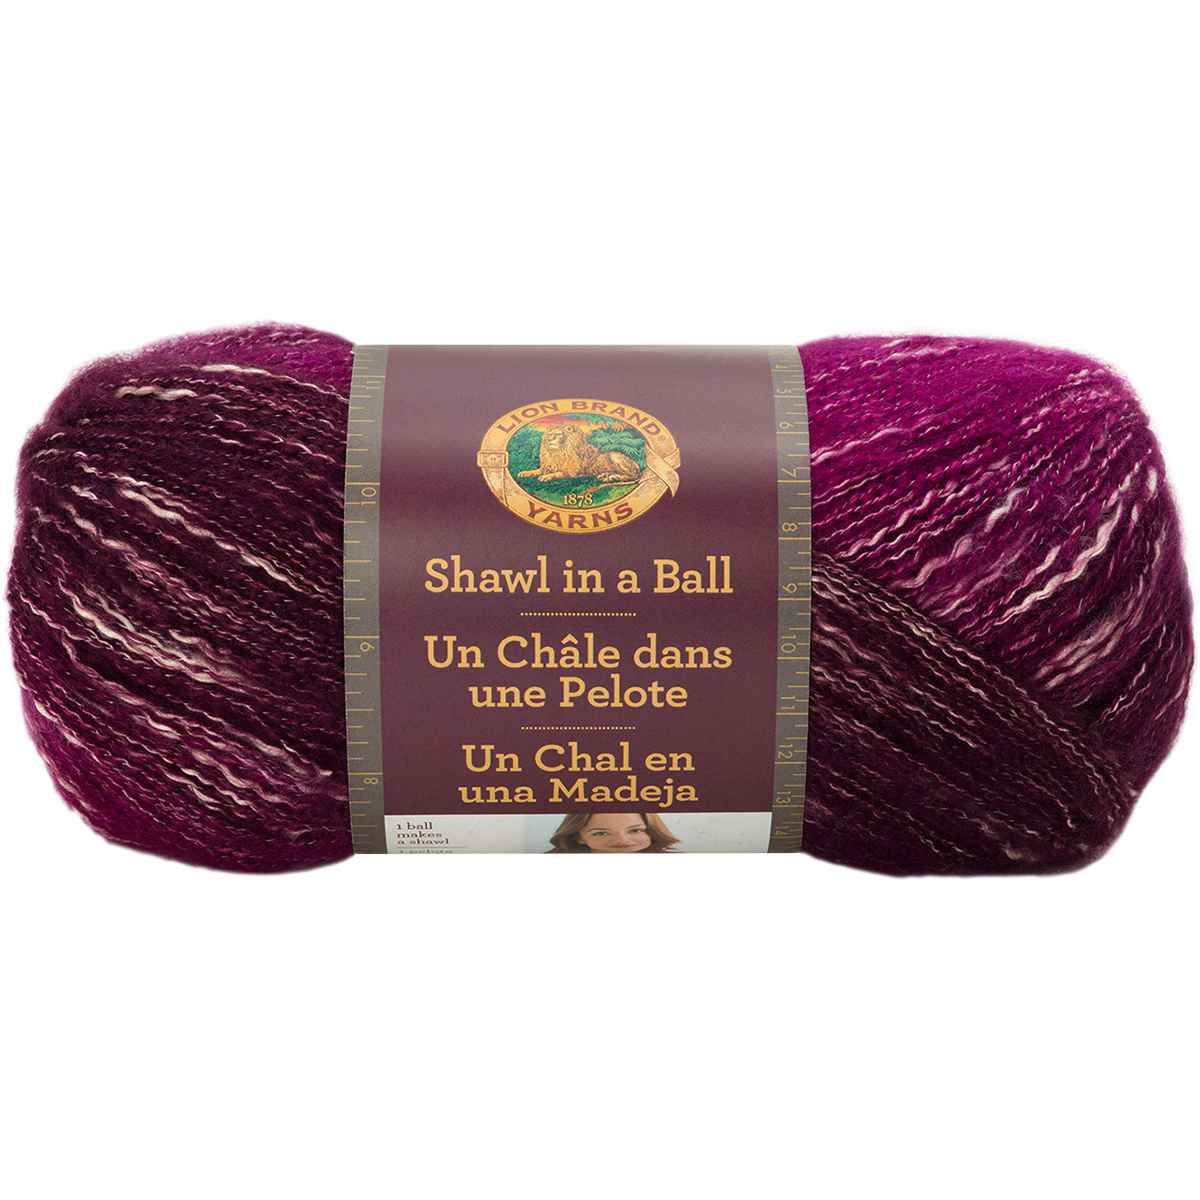 Knitting Warehouse Shipping : Lion brand shawl in a ball yarn